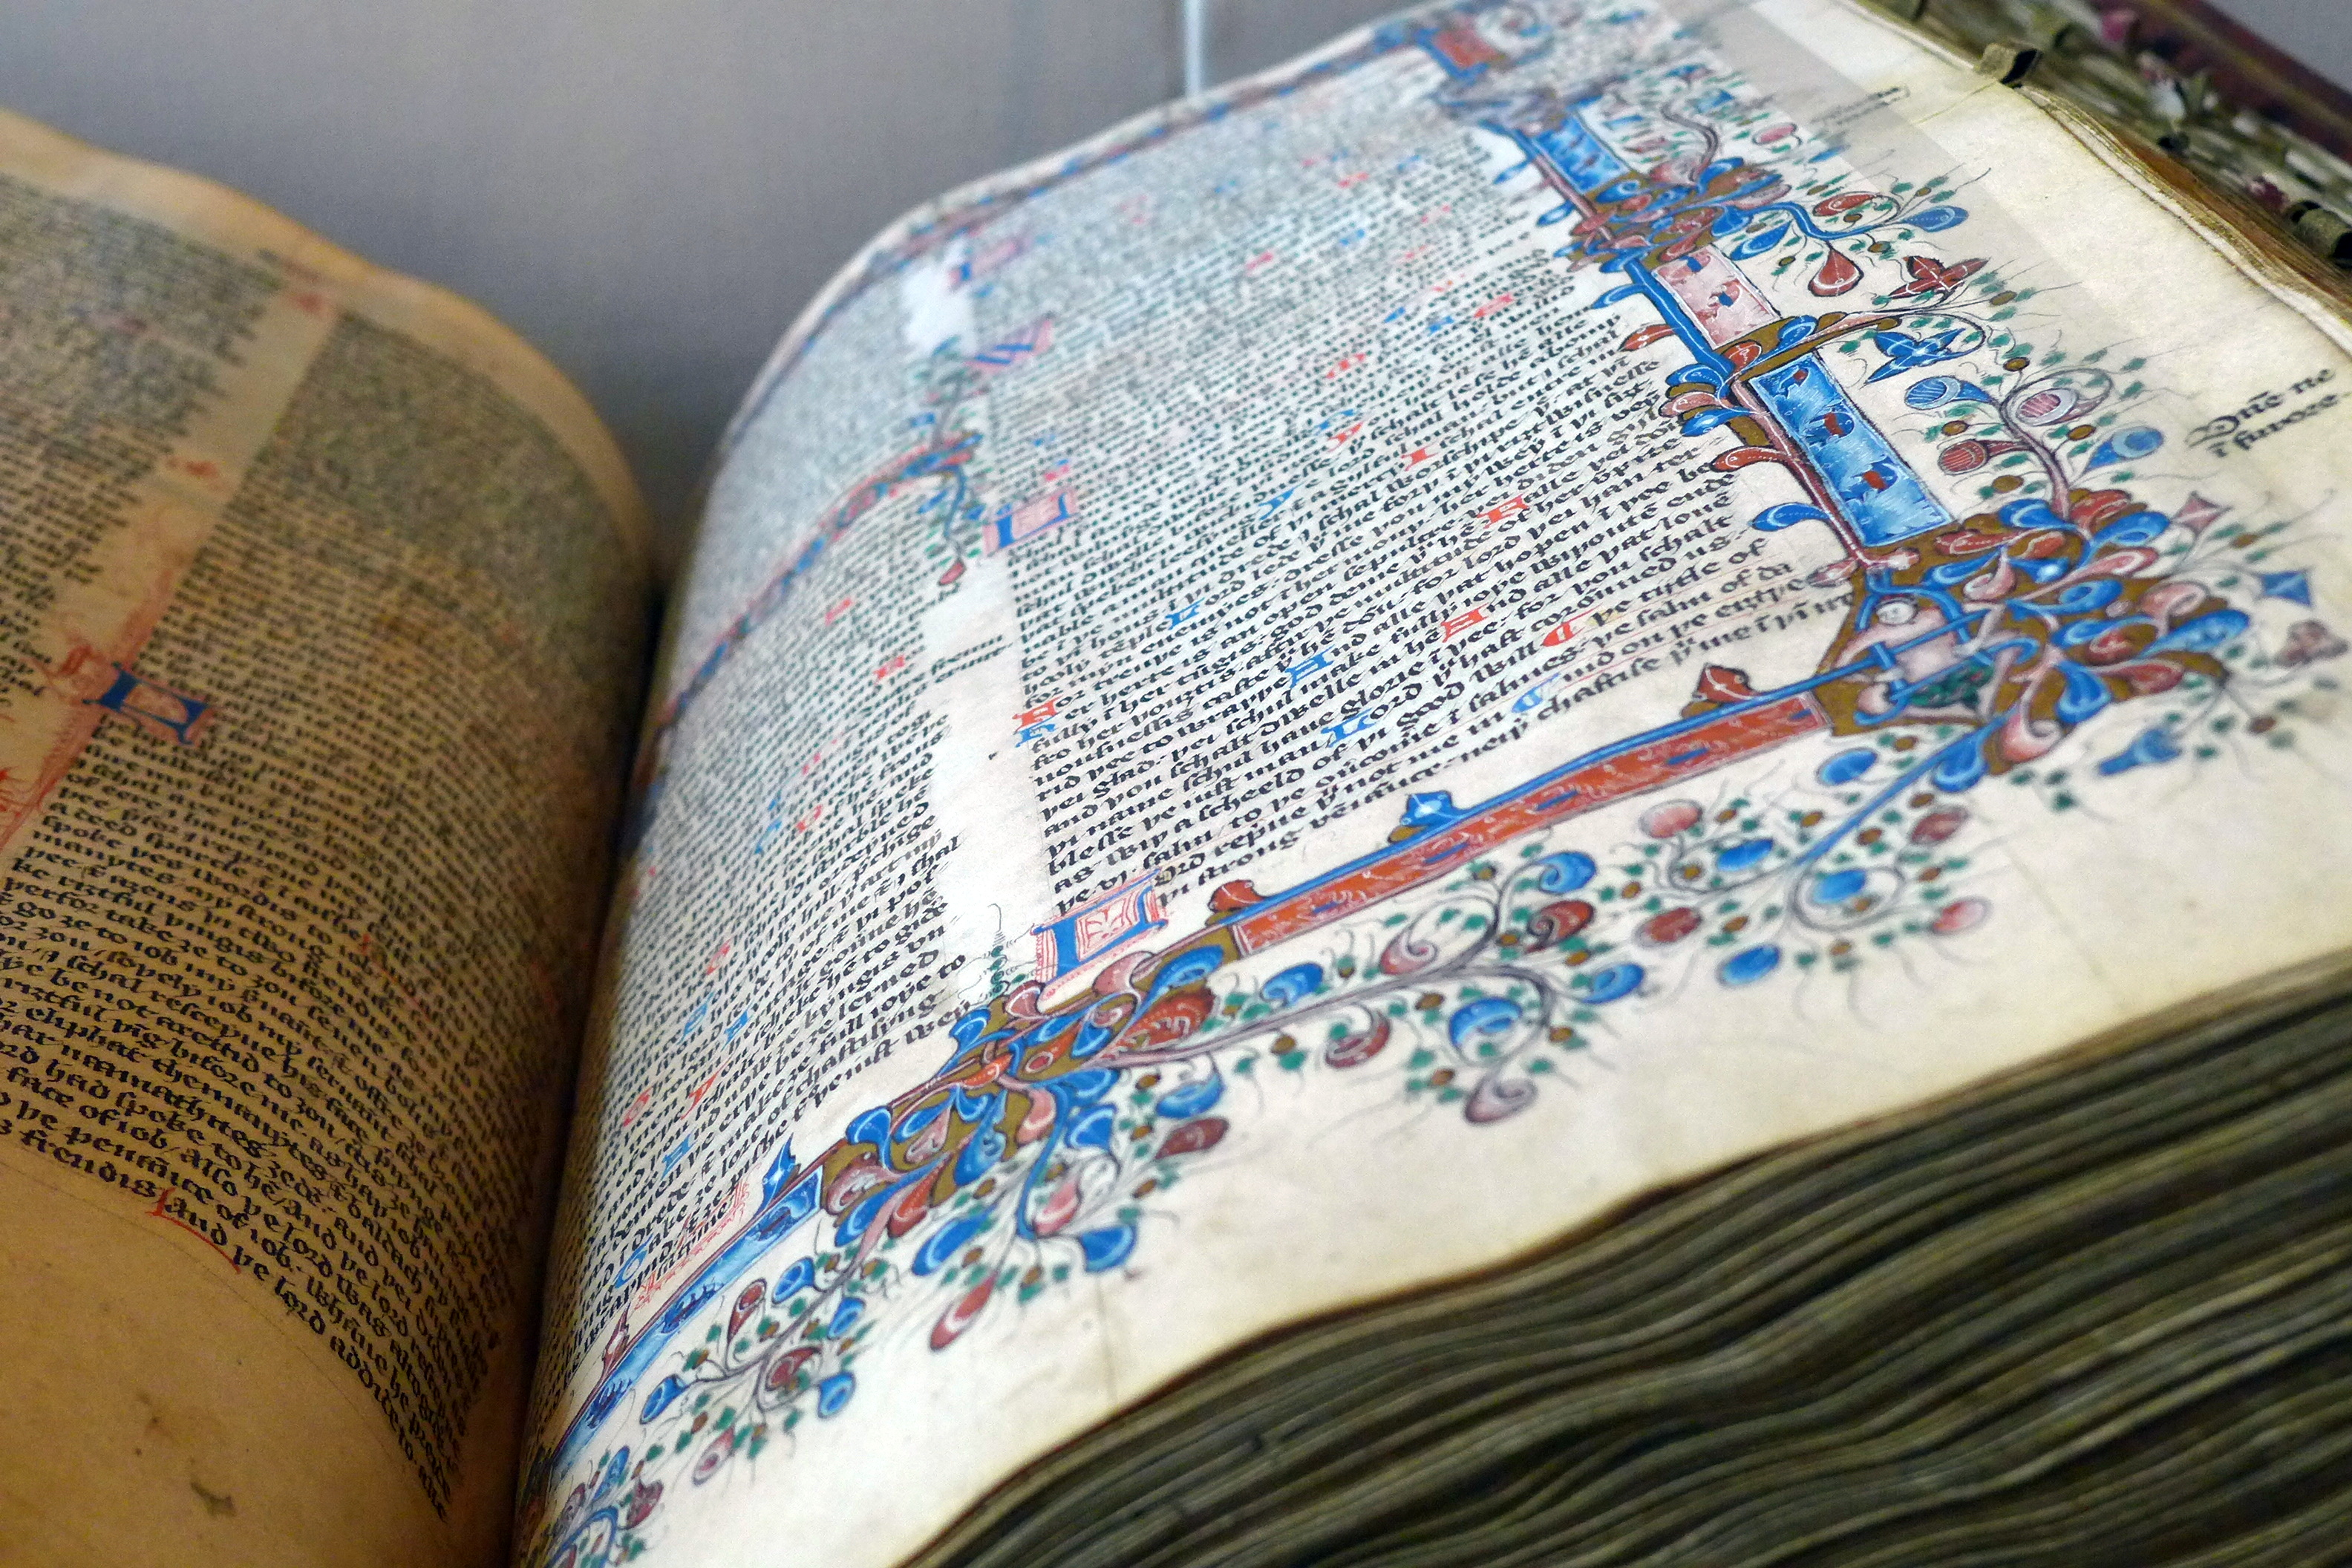 A Tyndale Bible, displayed at the Bodleian Library in June 2014, photo by Steve Bennett (stevage)